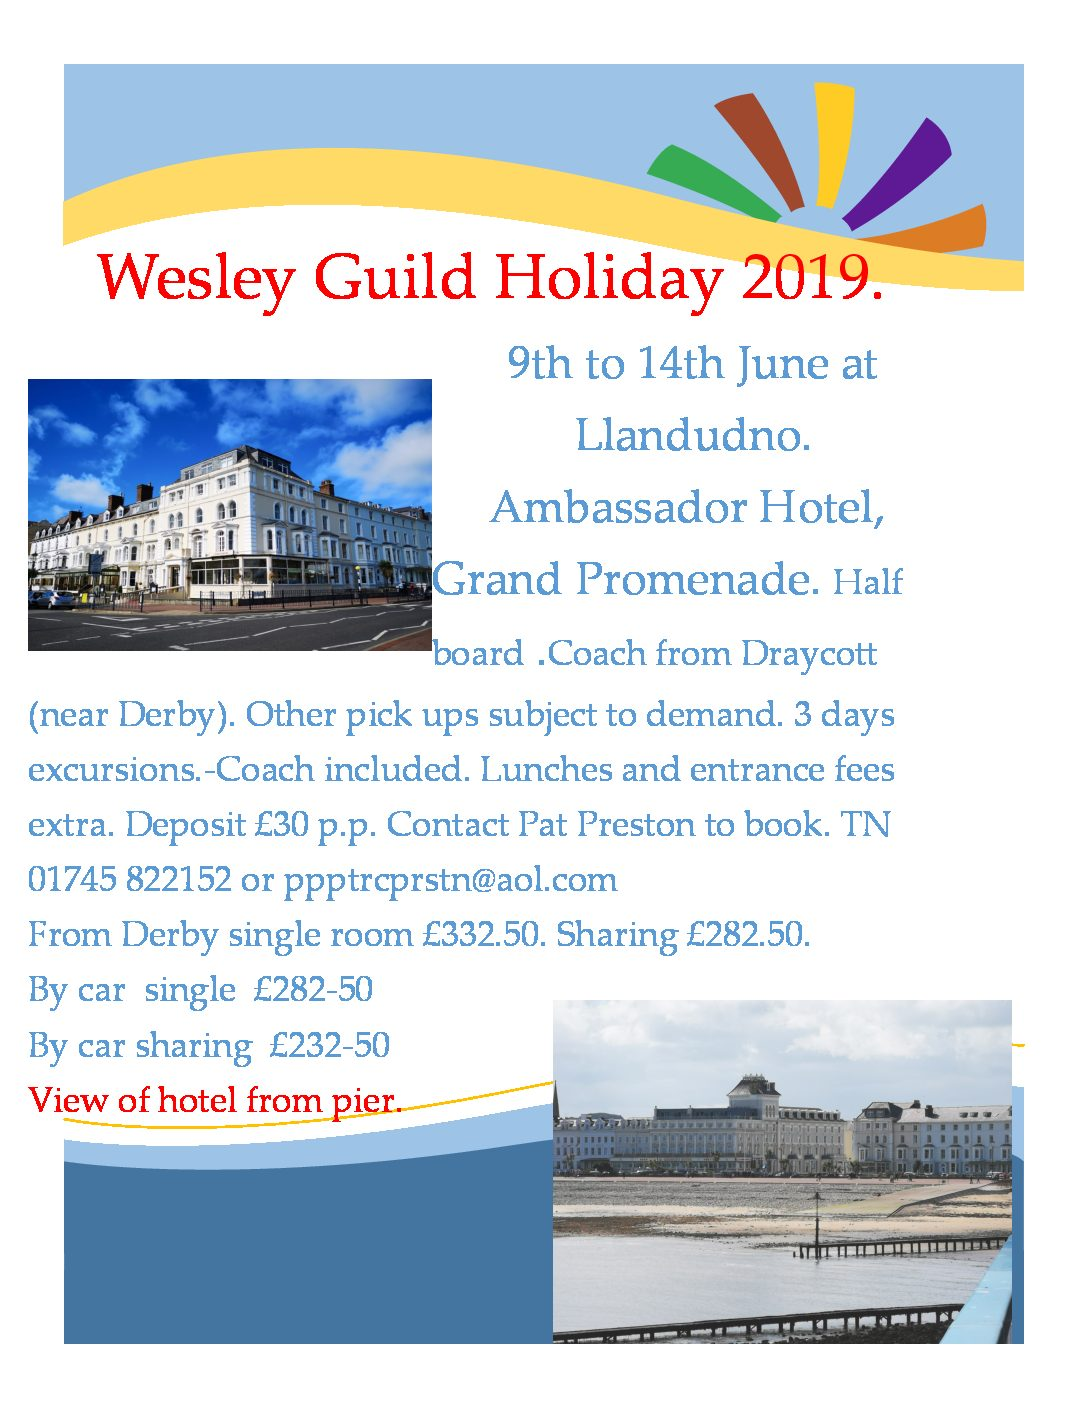 Wesley Guild Holiday 2019 Poster